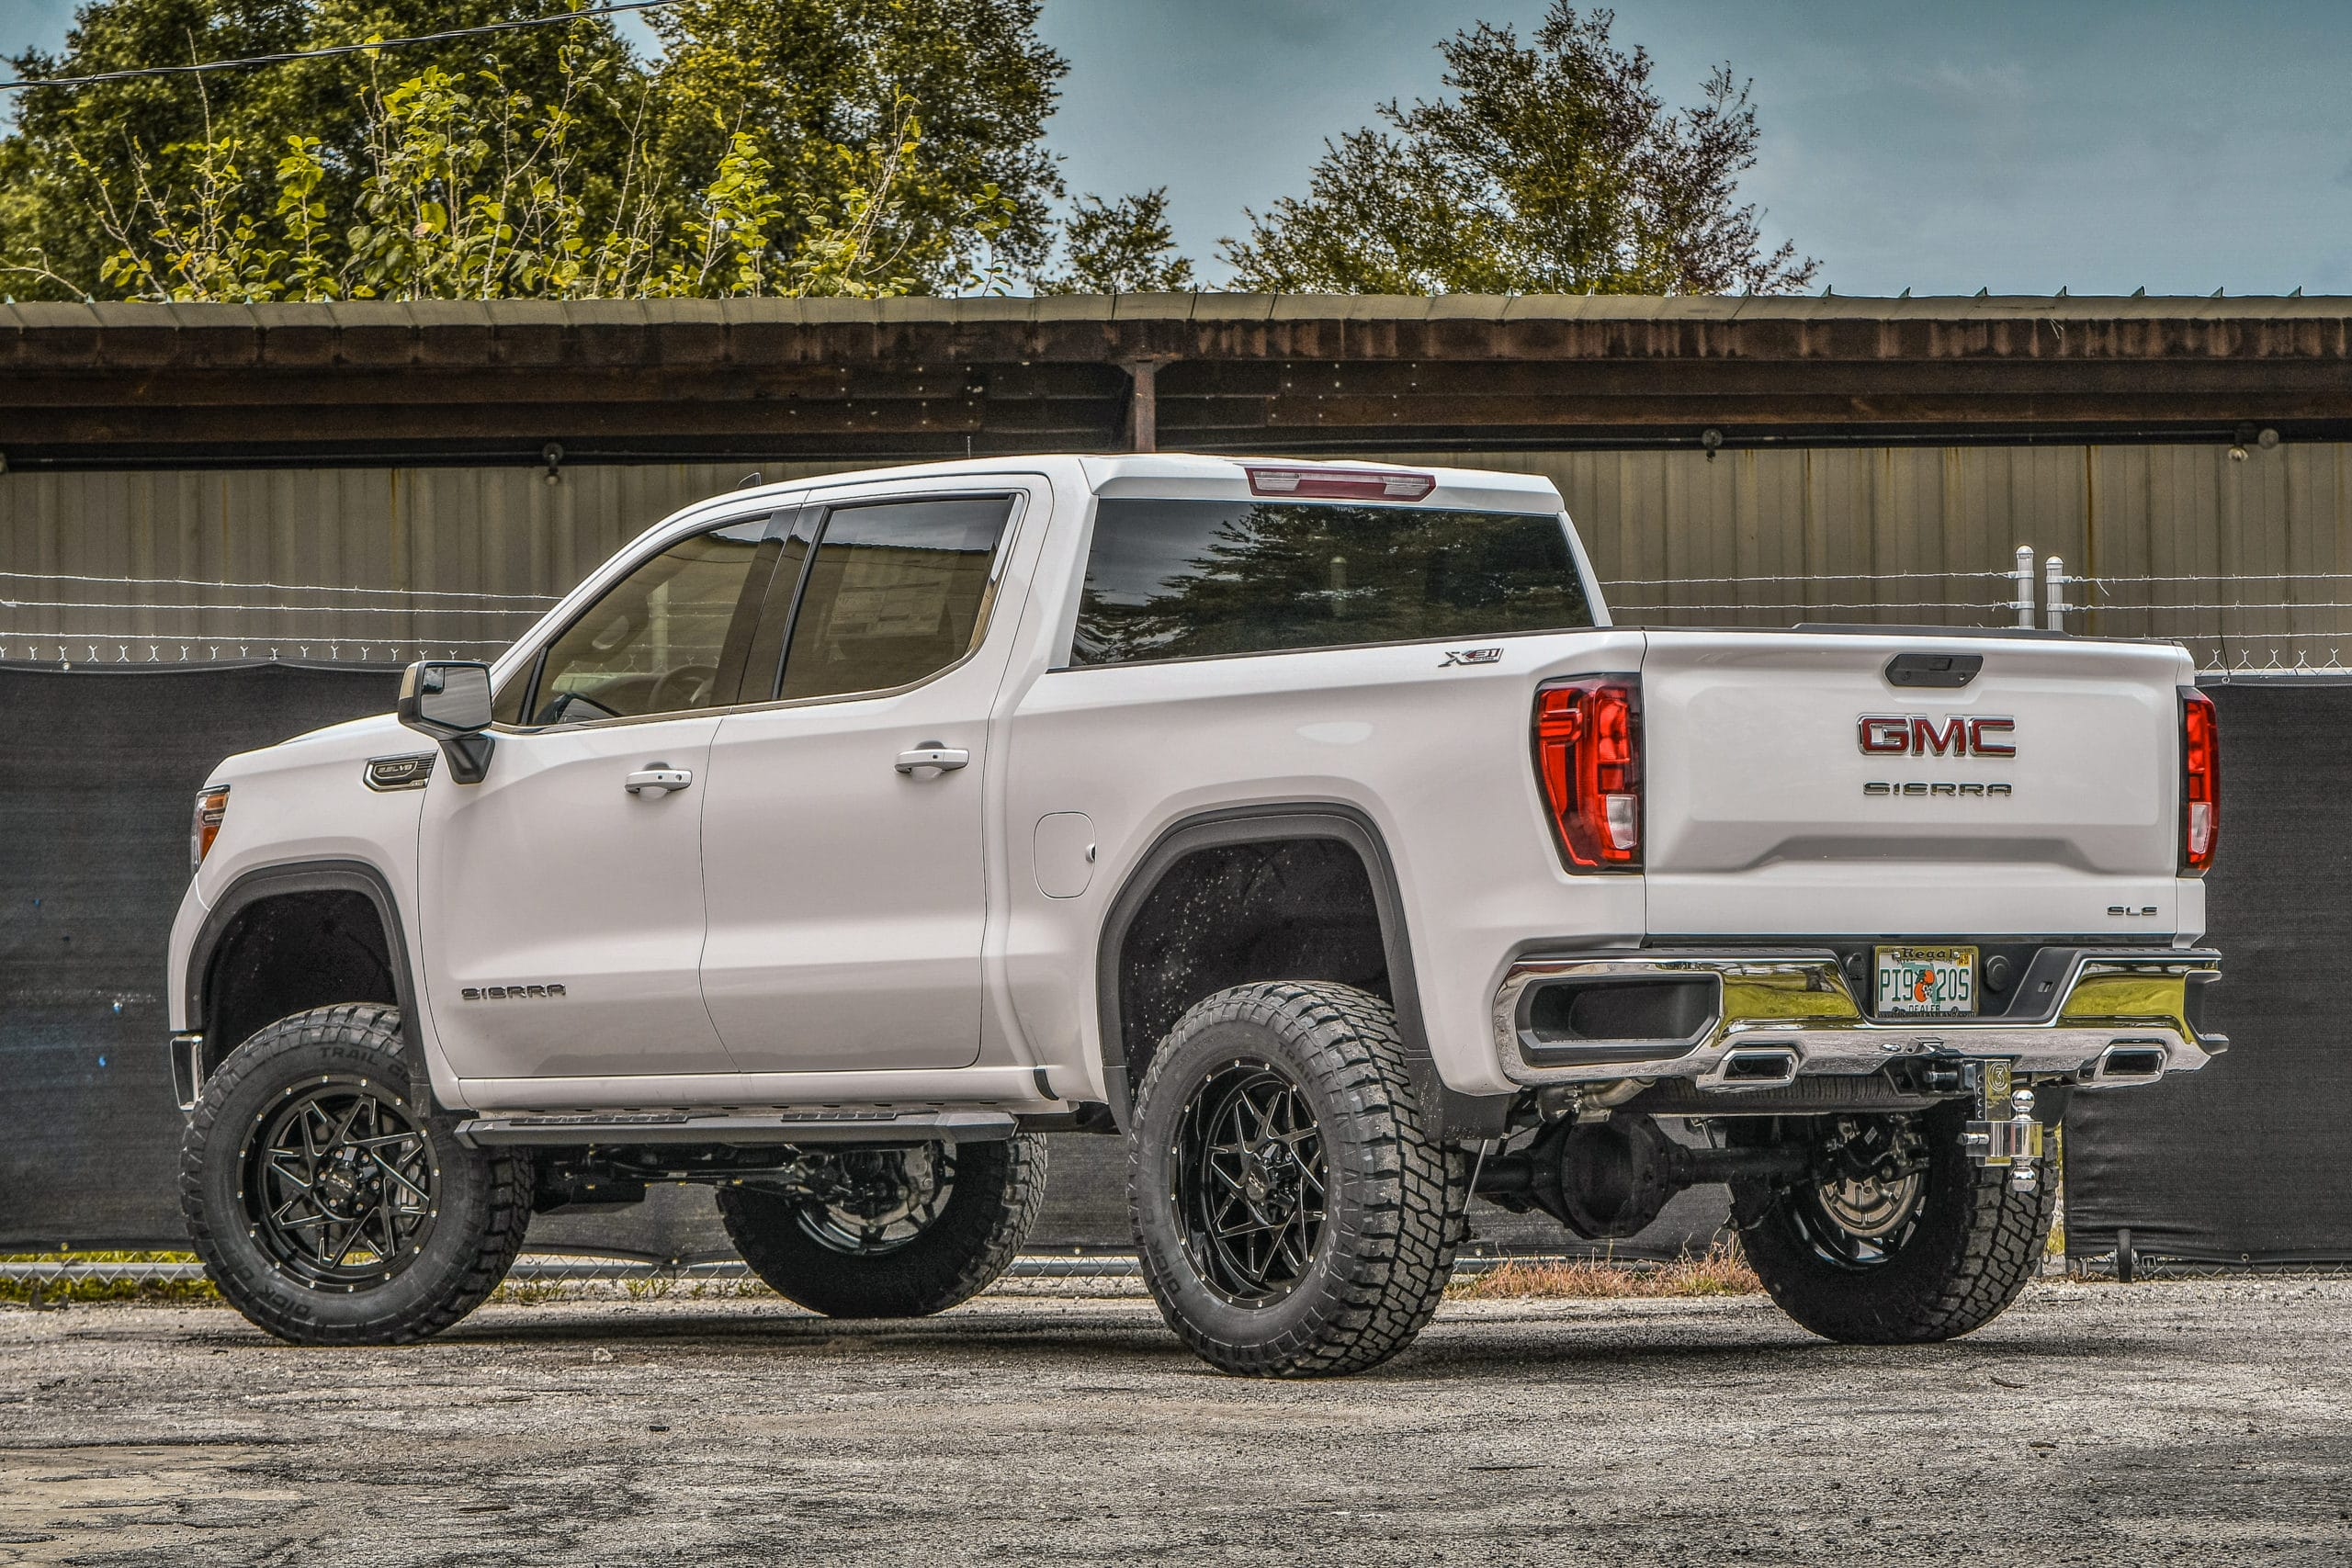 Stainless Patriot Boards on GMC Sierra